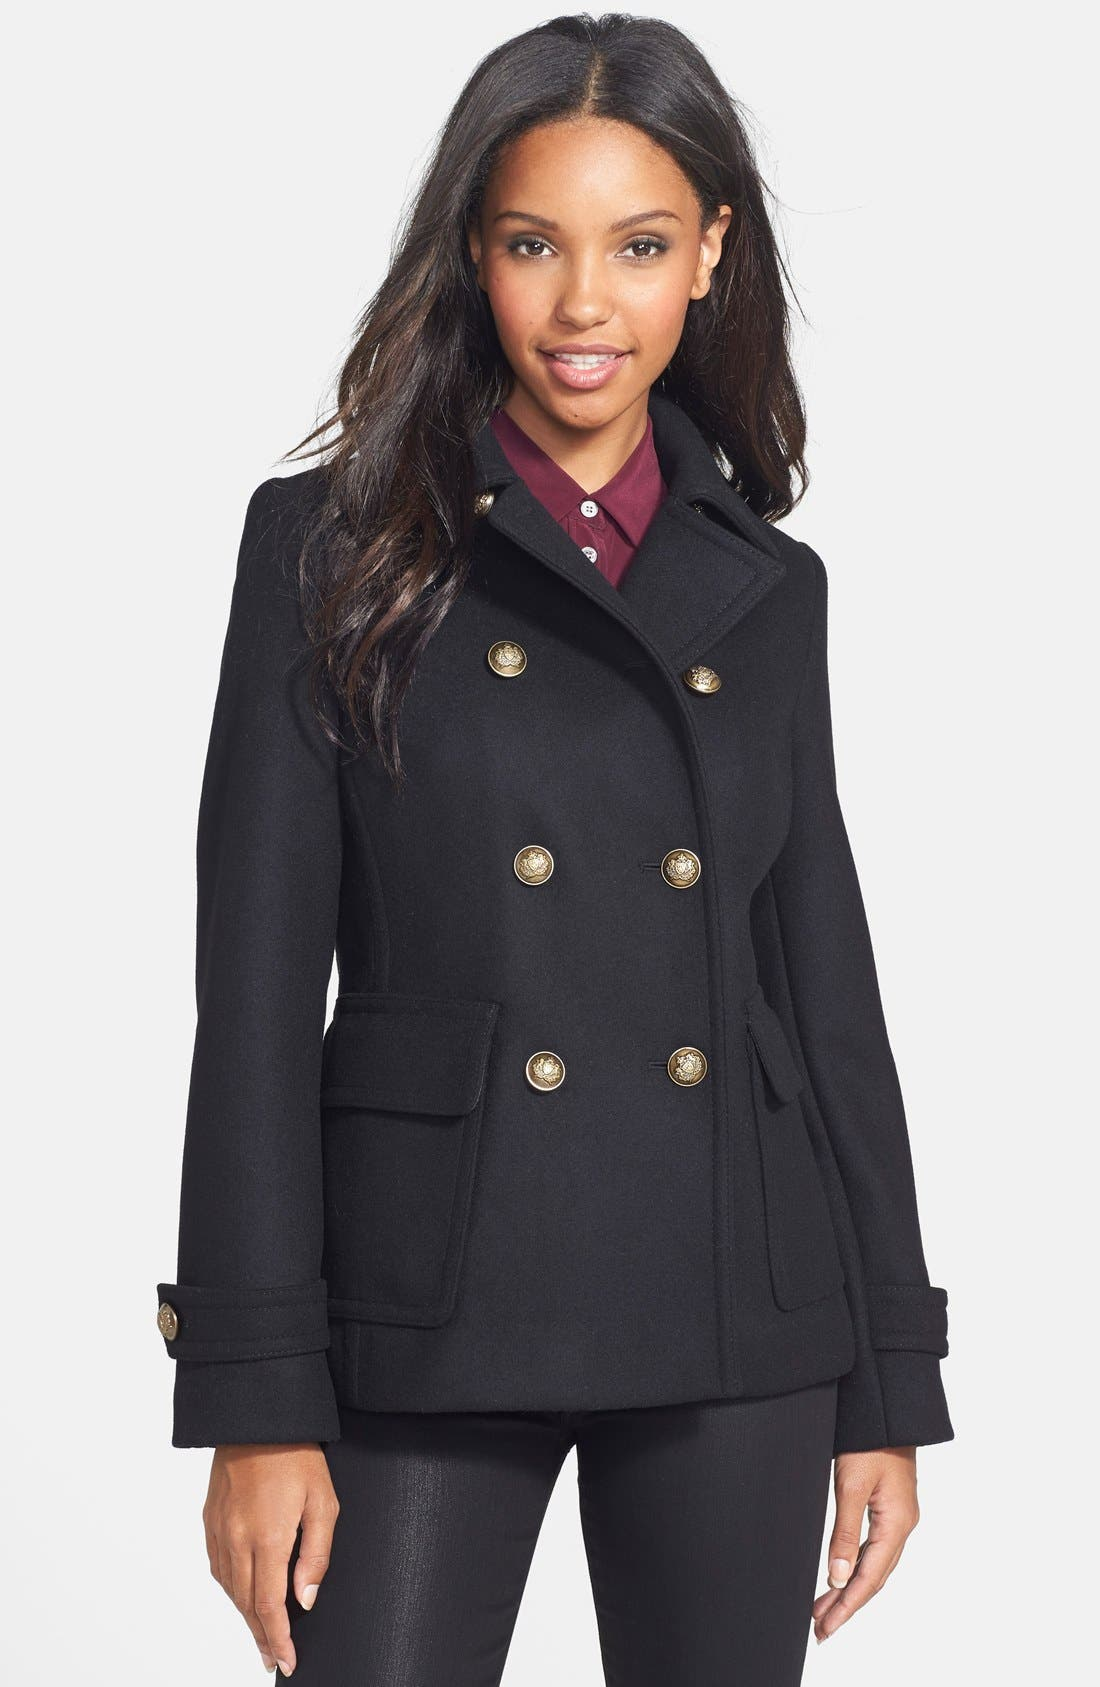 Alternate Image 1 Selected - Kristen Blake Double Breasted Wool Blend Skirted Peacoat (Regular & Petite)